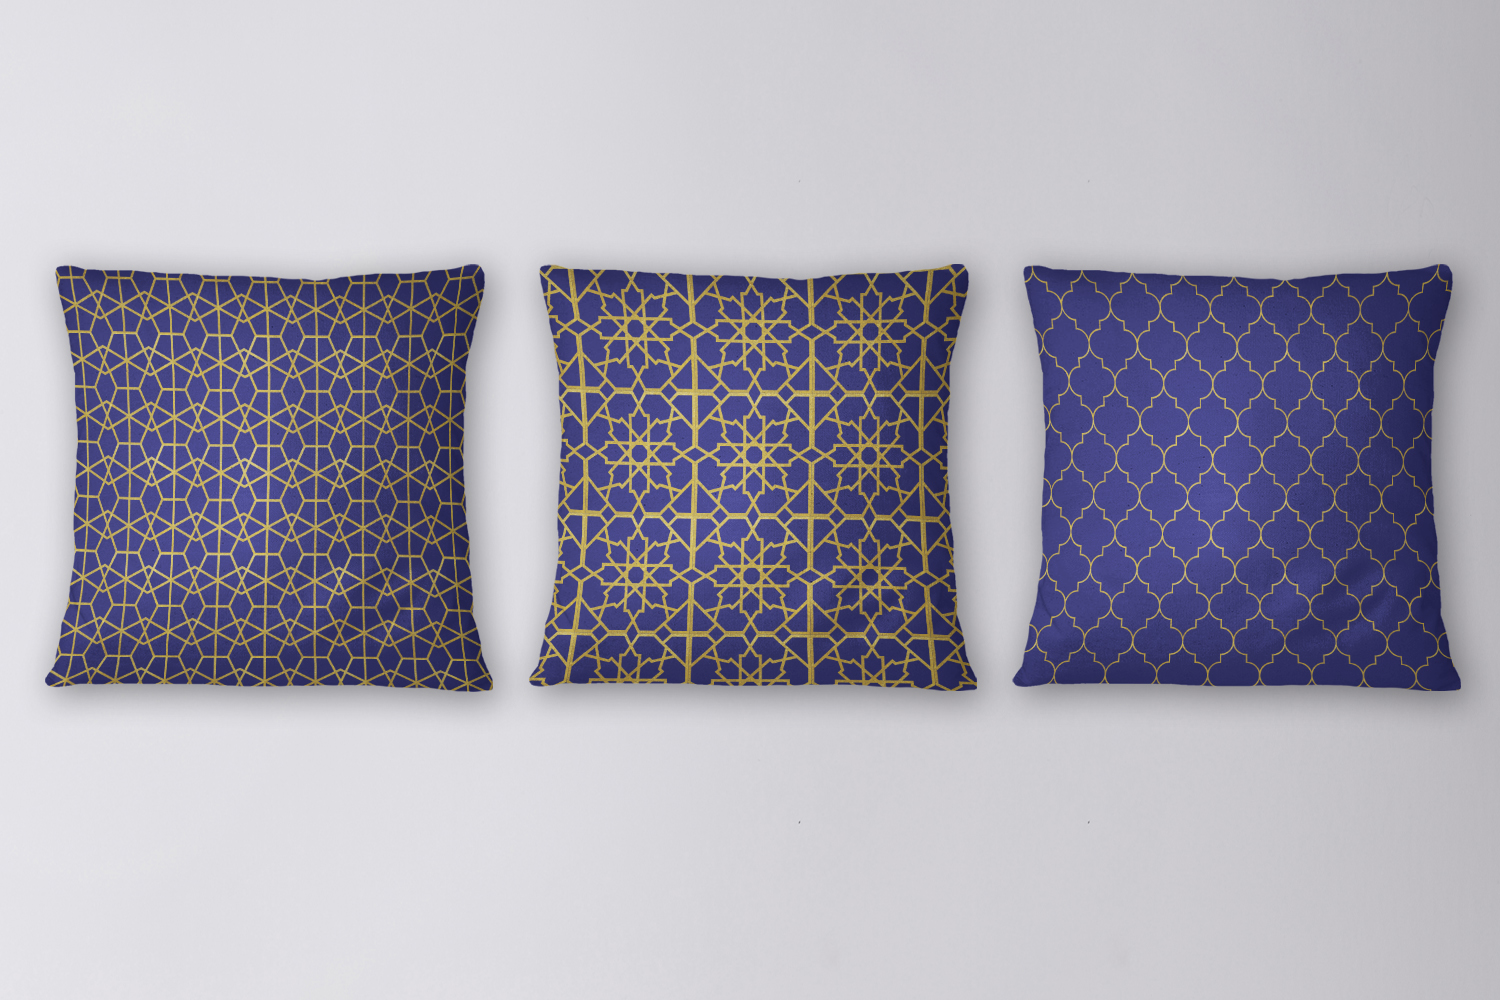 8 Seamless Moroccan Patterns - Gold & Cobalt Blue Set 2 example image 4